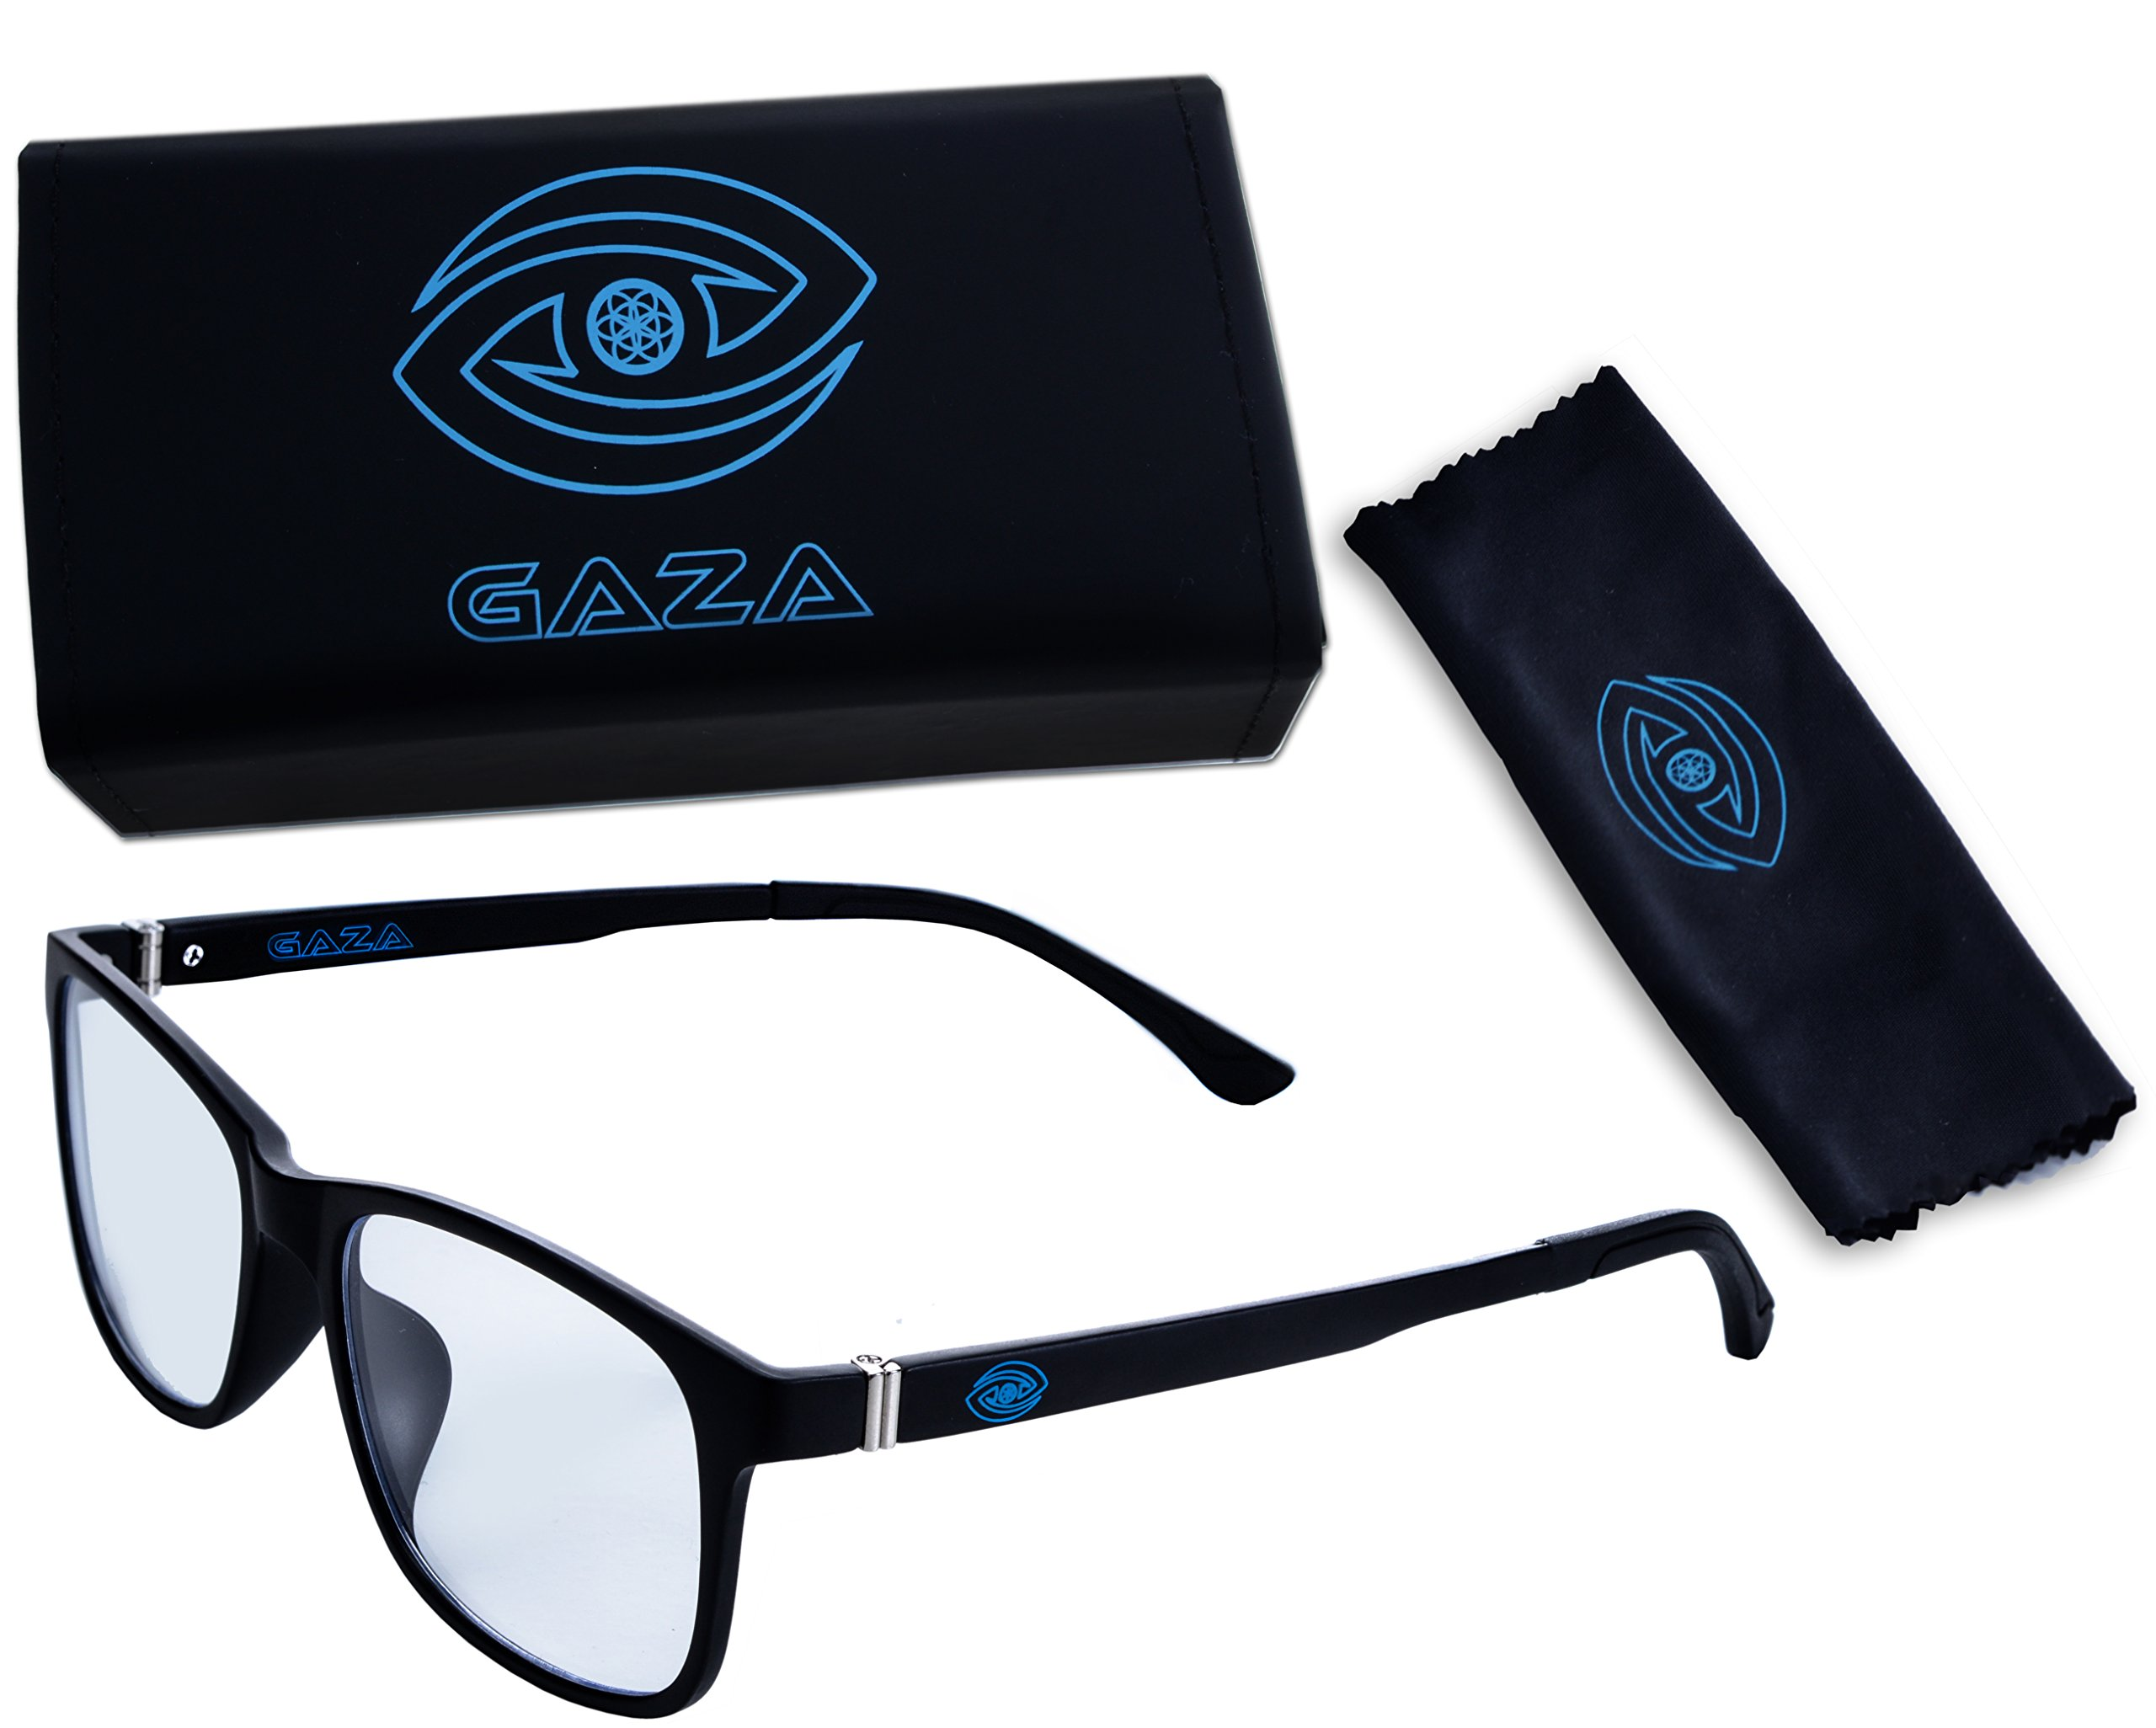 GAZA Computer Glasses - Blue Light Blocking Glasses for Reducing Digital Eyestrain/Fatigue, Better Sleep, Preventing Headaches - Increased Stamina, Performance & Productivity for Work/Gaming